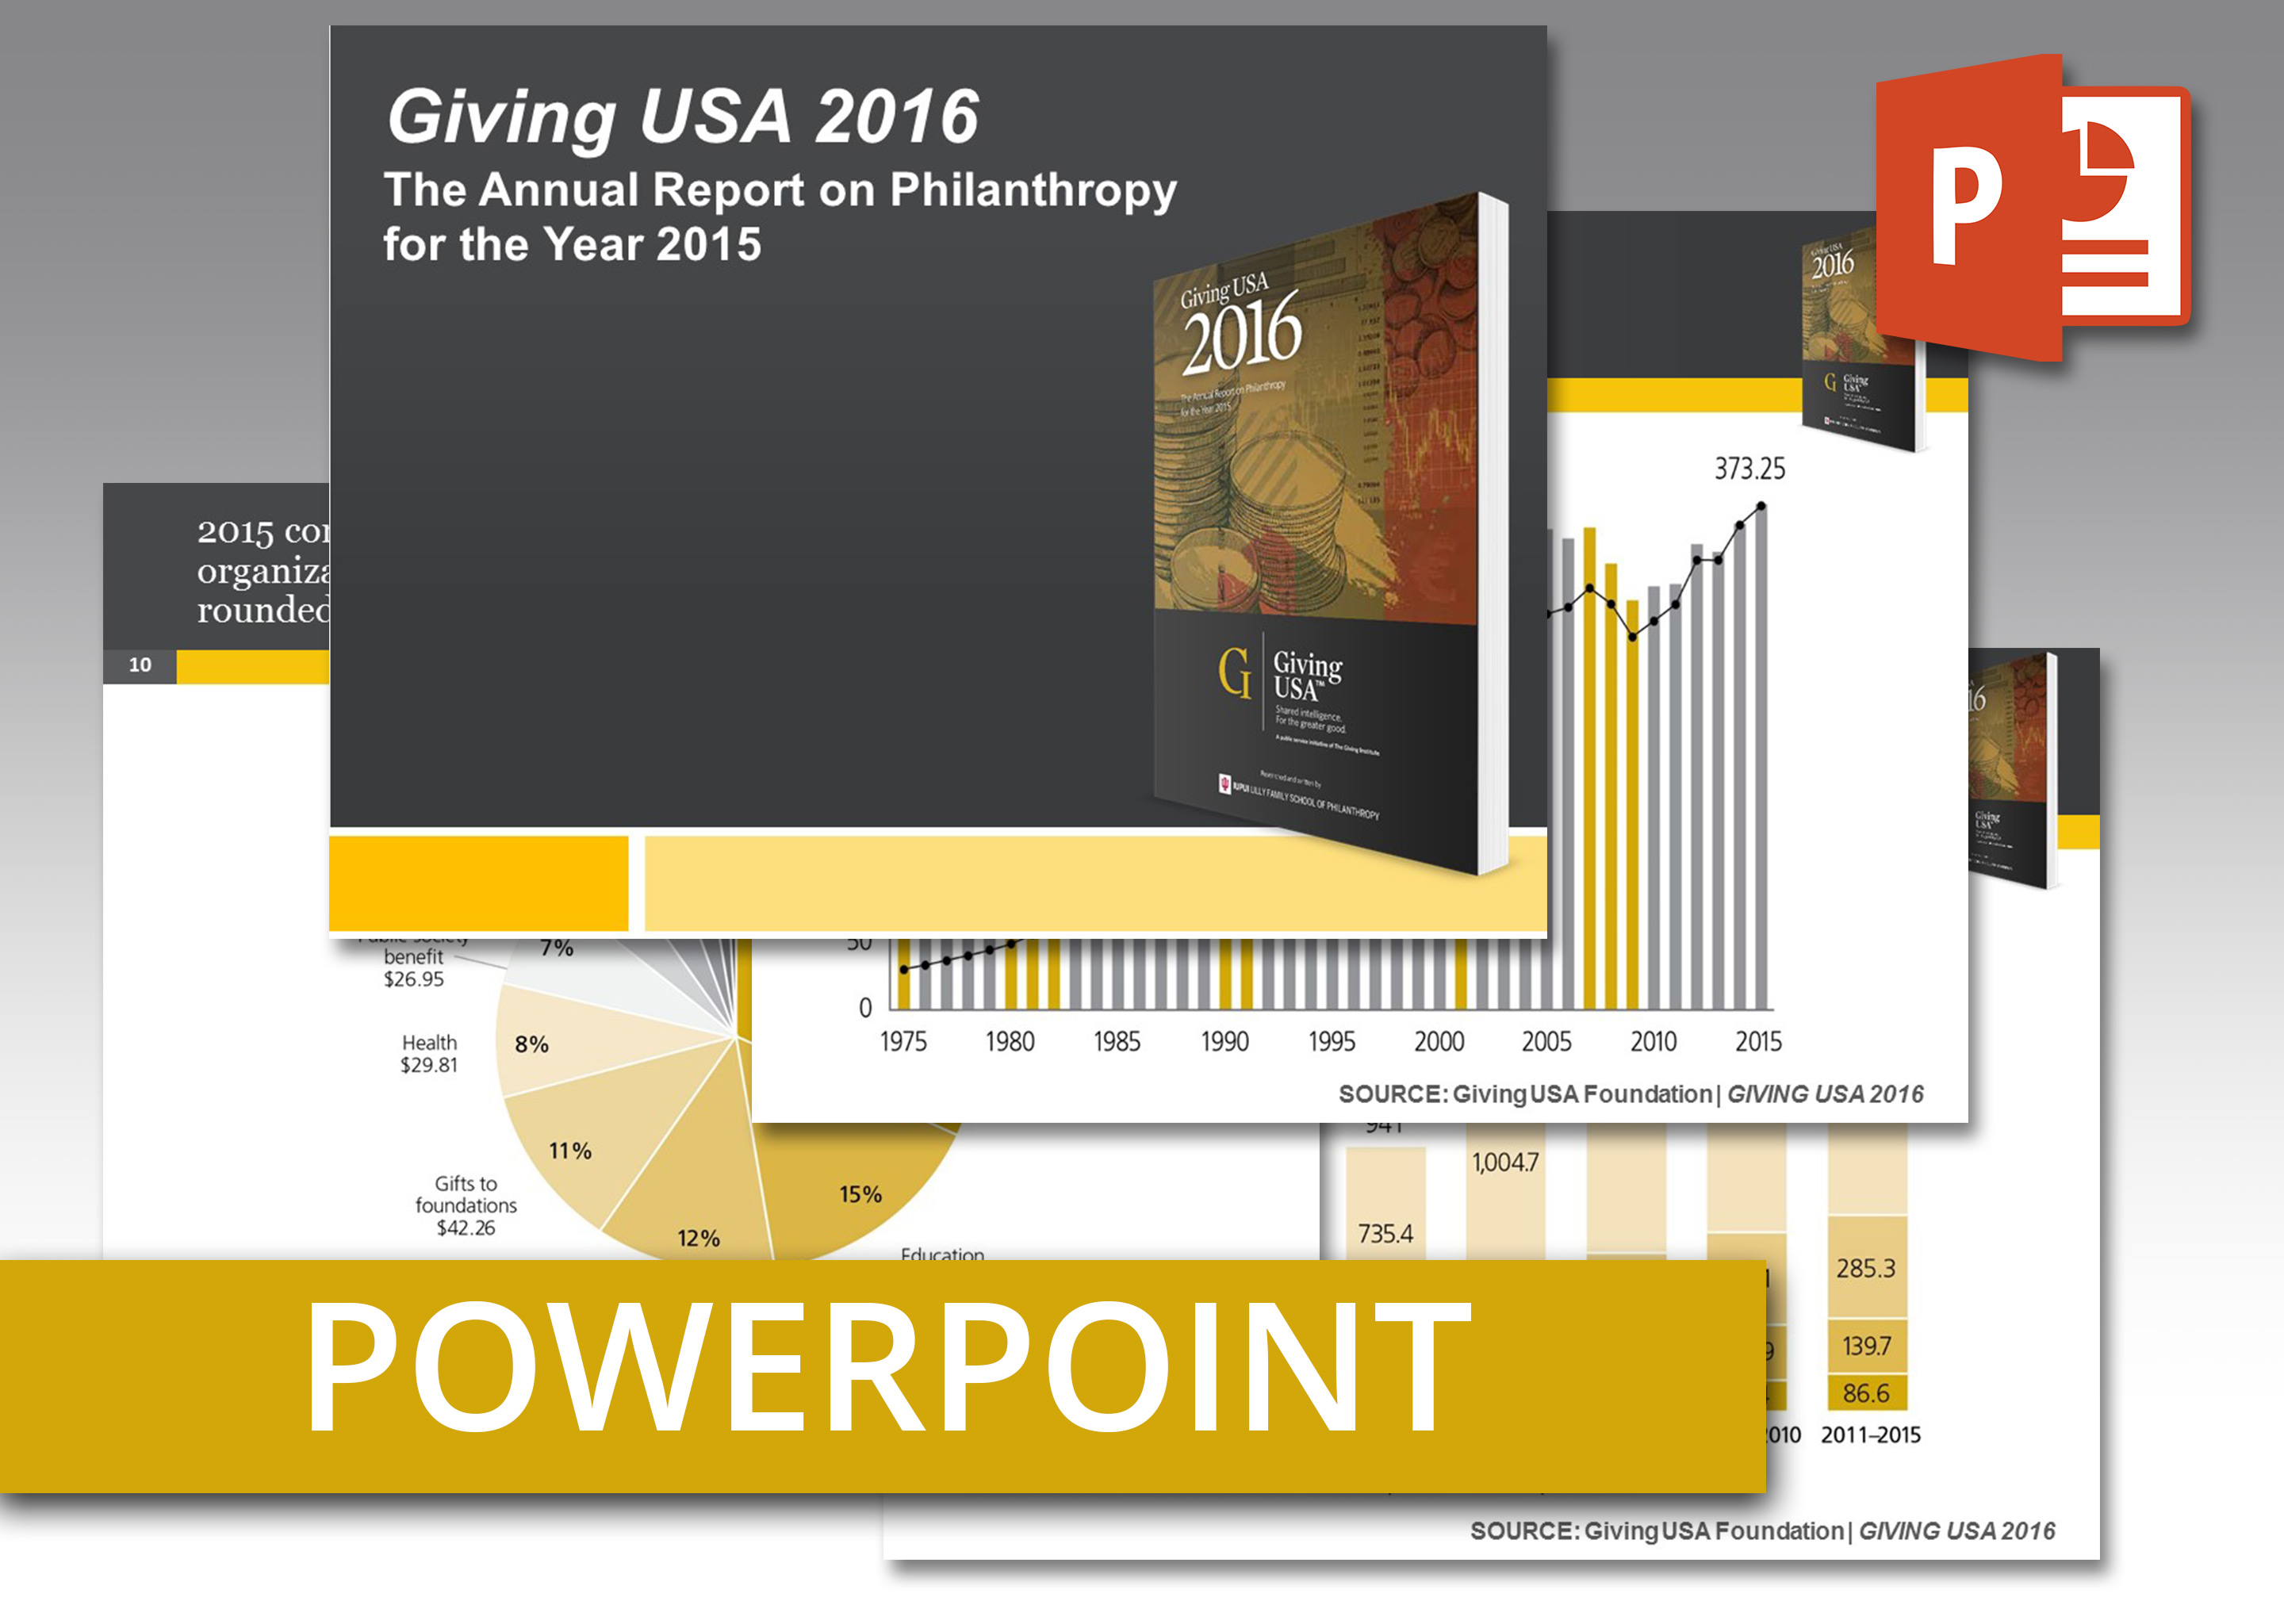 Coolmathgamesus  Splendid Giving Usa  Powerpoint An Easytouse Presentation Of Report  With Magnificent Giving Usa  Powerpoint An Easytouse Presentation Of Report Findings Including Talking Points With Delightful Equations Powerpoint Also Create Master Slide Powerpoint In Addition Bullet Point Powerpoint And Calculus Powerpoints As Well As Communication Powerpoint Template Additionally Diversity Powerpoint Presentation From Givingusaorg With Coolmathgamesus  Magnificent Giving Usa  Powerpoint An Easytouse Presentation Of Report  With Delightful Giving Usa  Powerpoint An Easytouse Presentation Of Report Findings Including Talking Points And Splendid Equations Powerpoint Also Create Master Slide Powerpoint In Addition Bullet Point Powerpoint From Givingusaorg